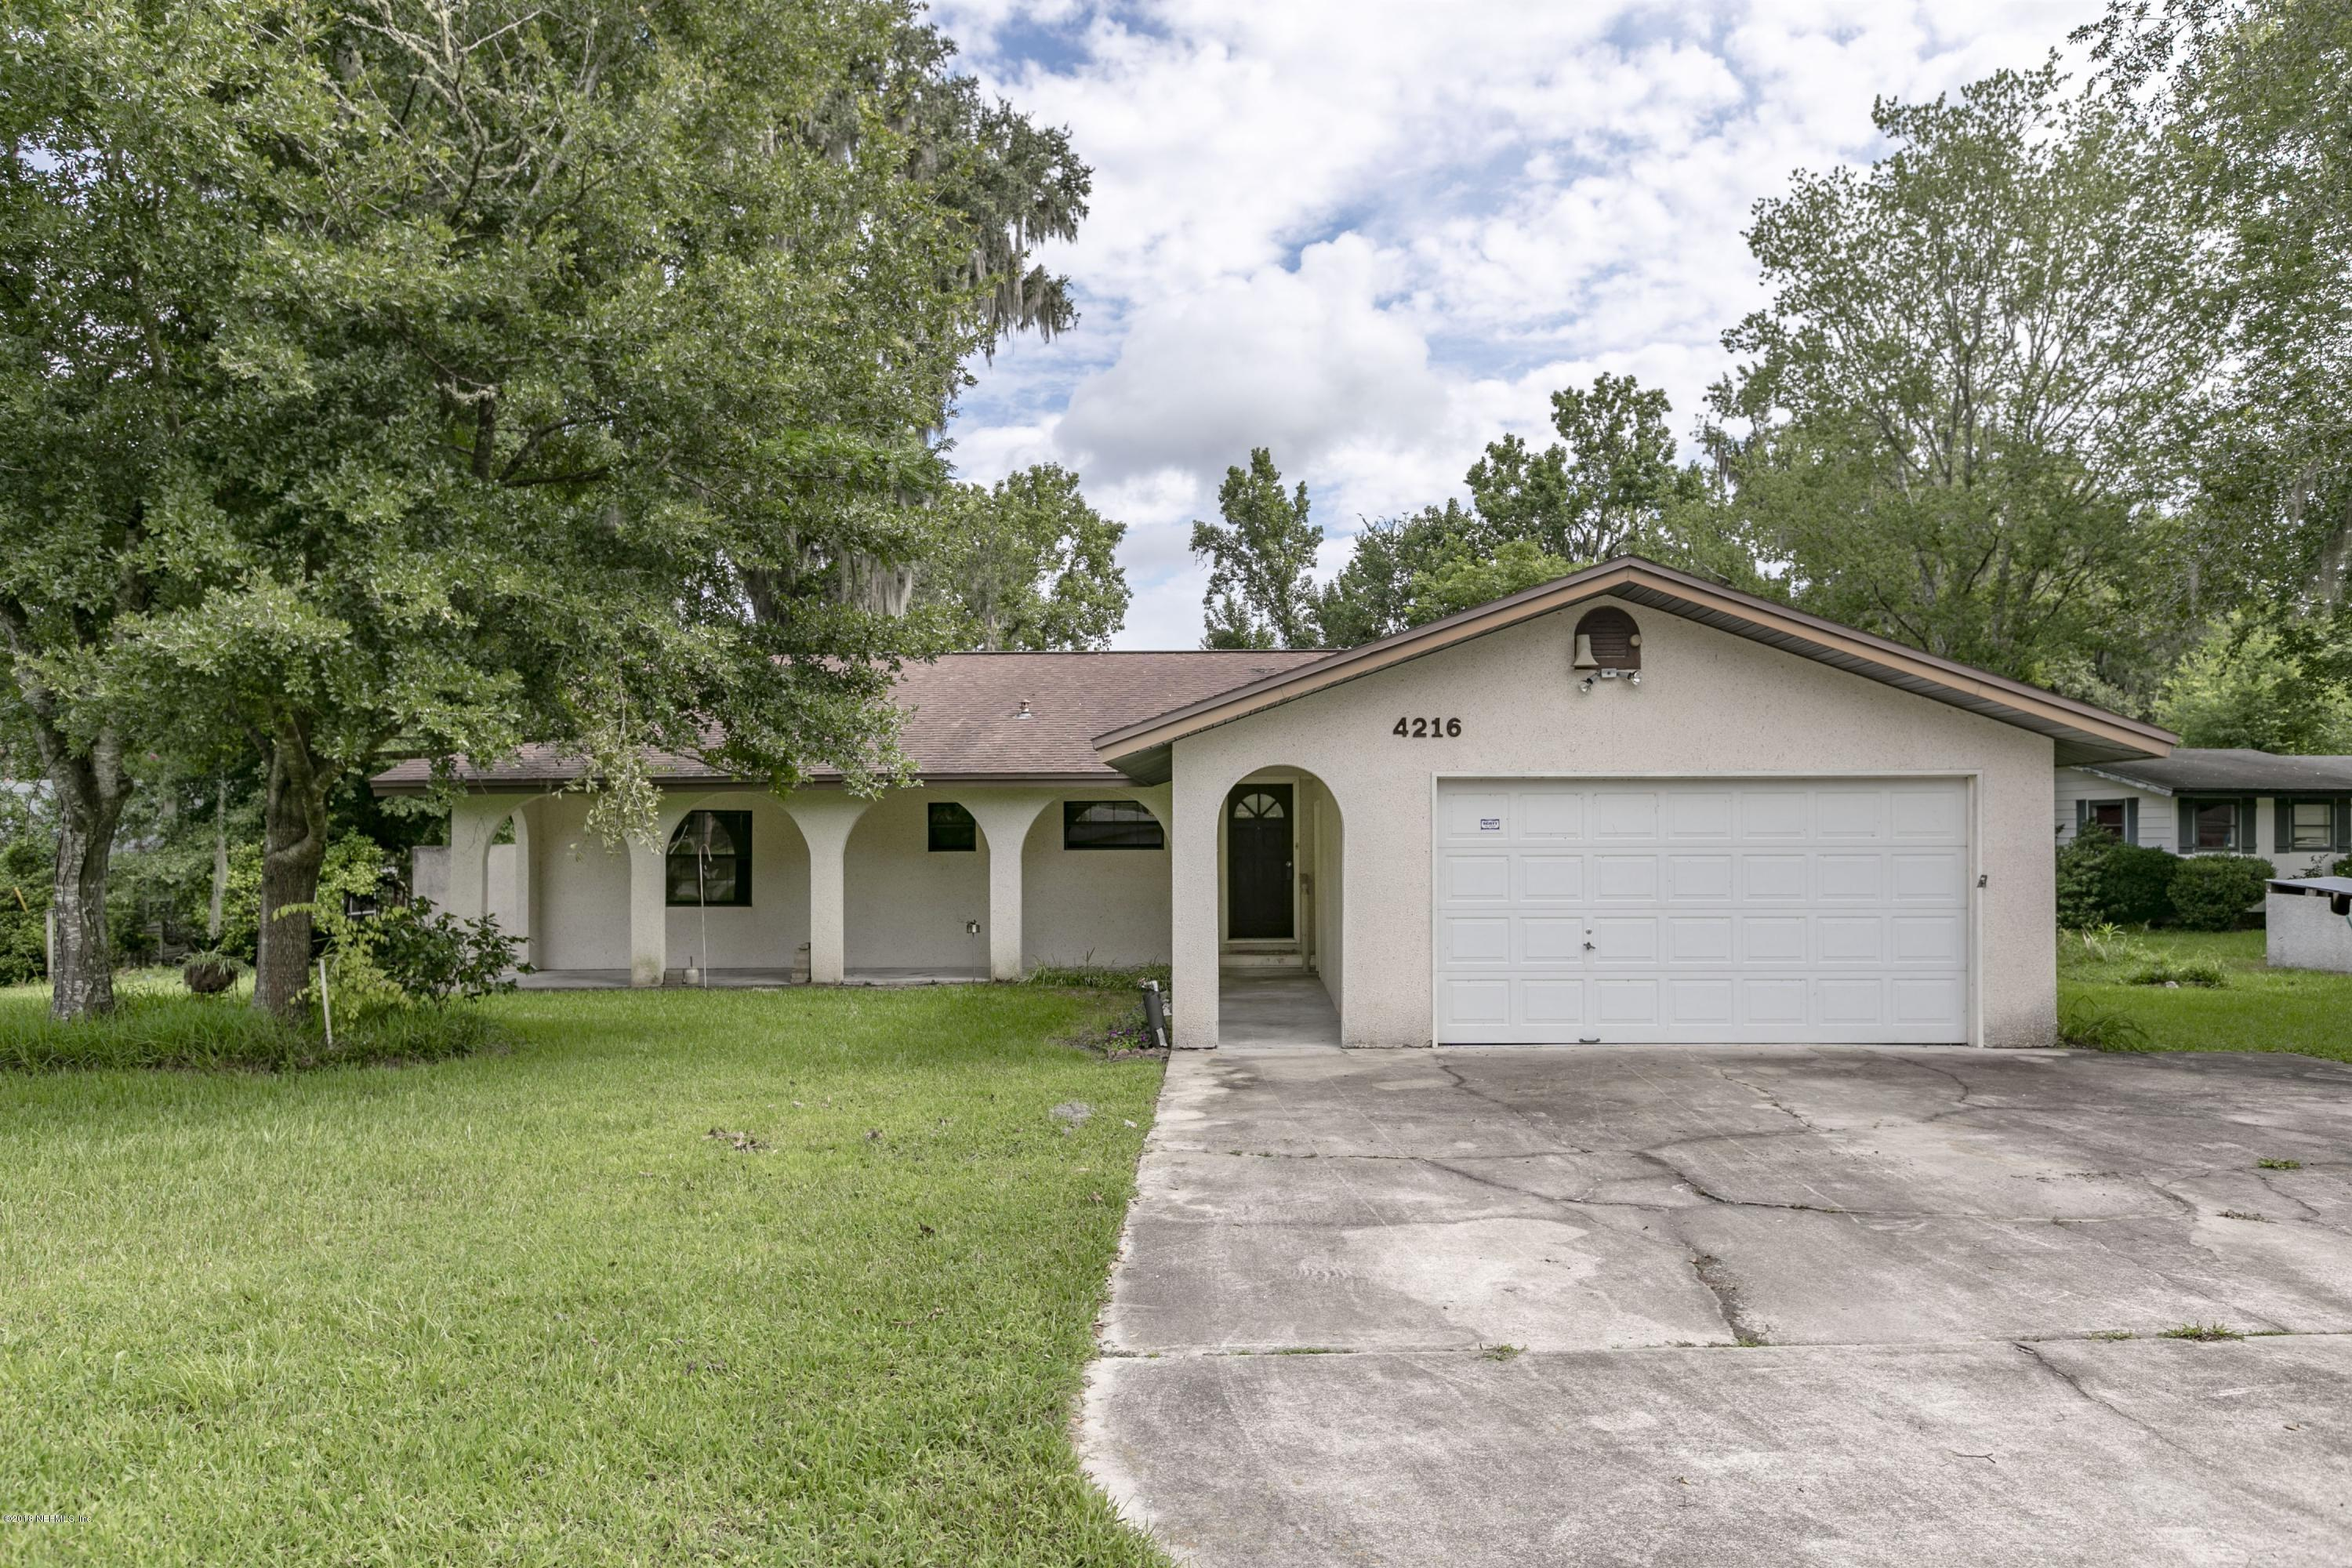 4216 SCENIC, MIDDLEBURG, FLORIDA 32068, 3 Bedrooms Bedrooms, ,1 BathroomBathrooms,Residential - single family,For sale,SCENIC,949617